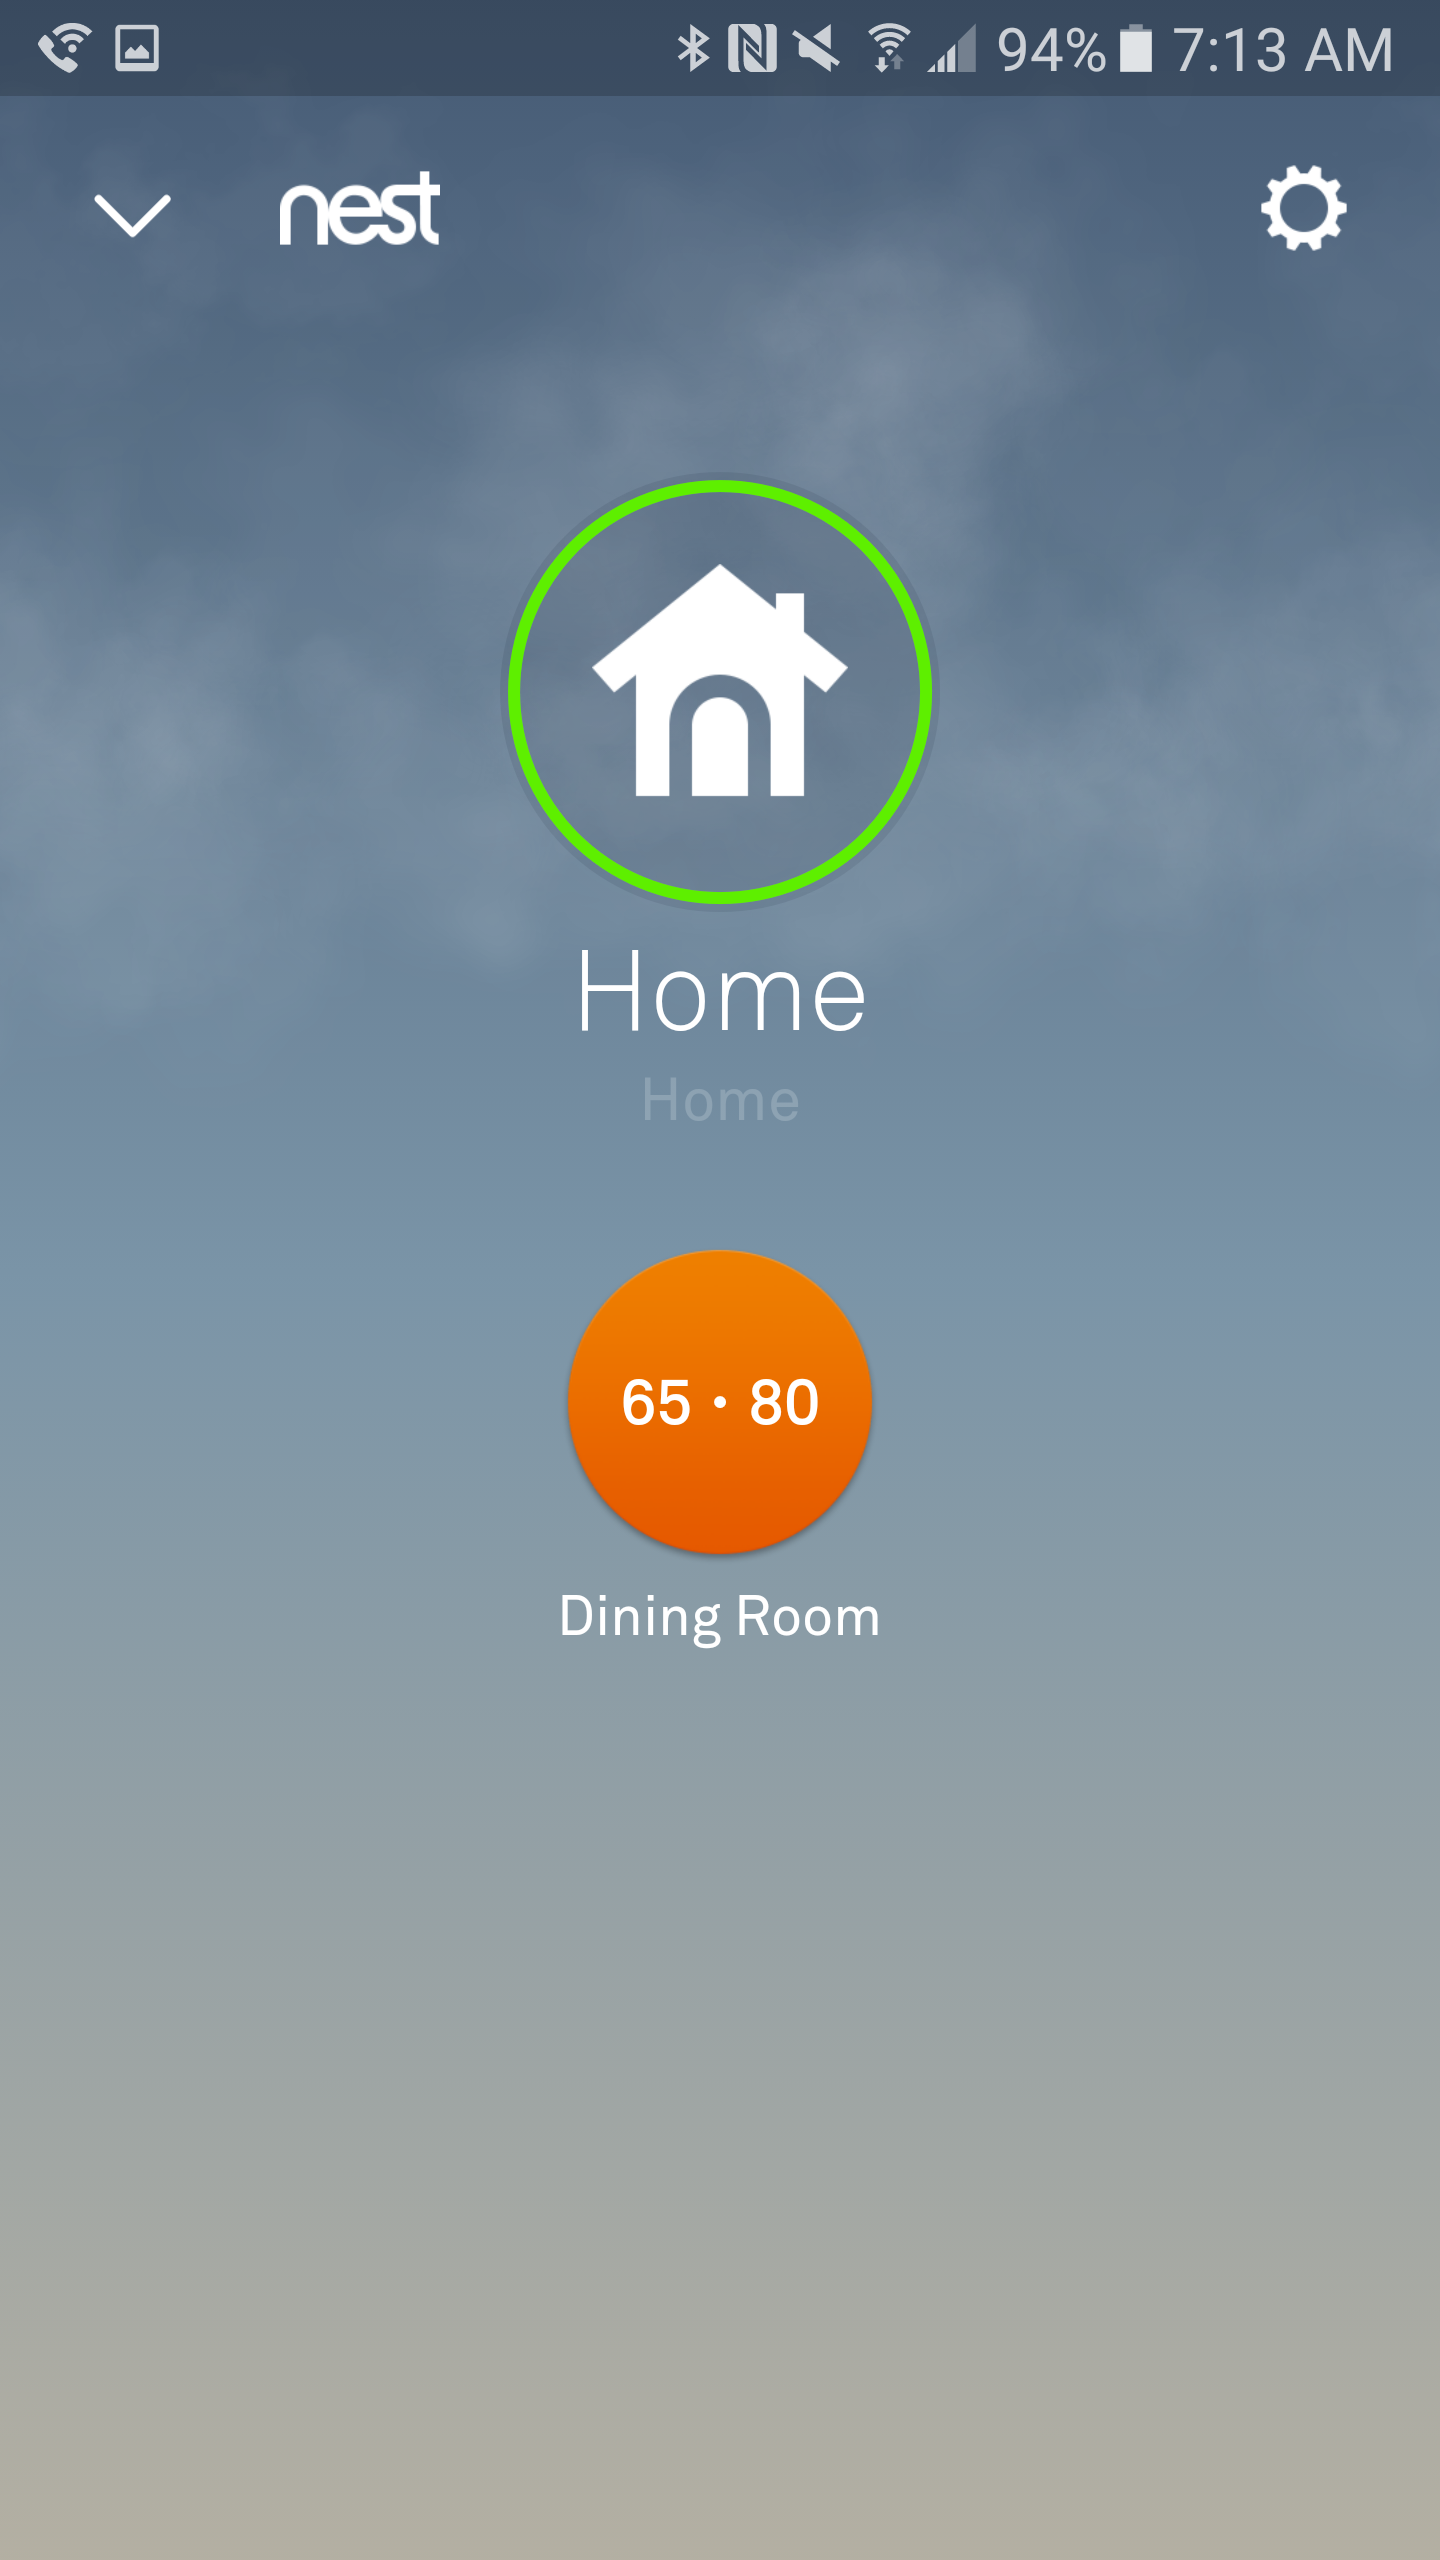 home design app review best apple home app devices make a nest 3rd gen learning thermostat review install setup apps and web the nest mobile app home